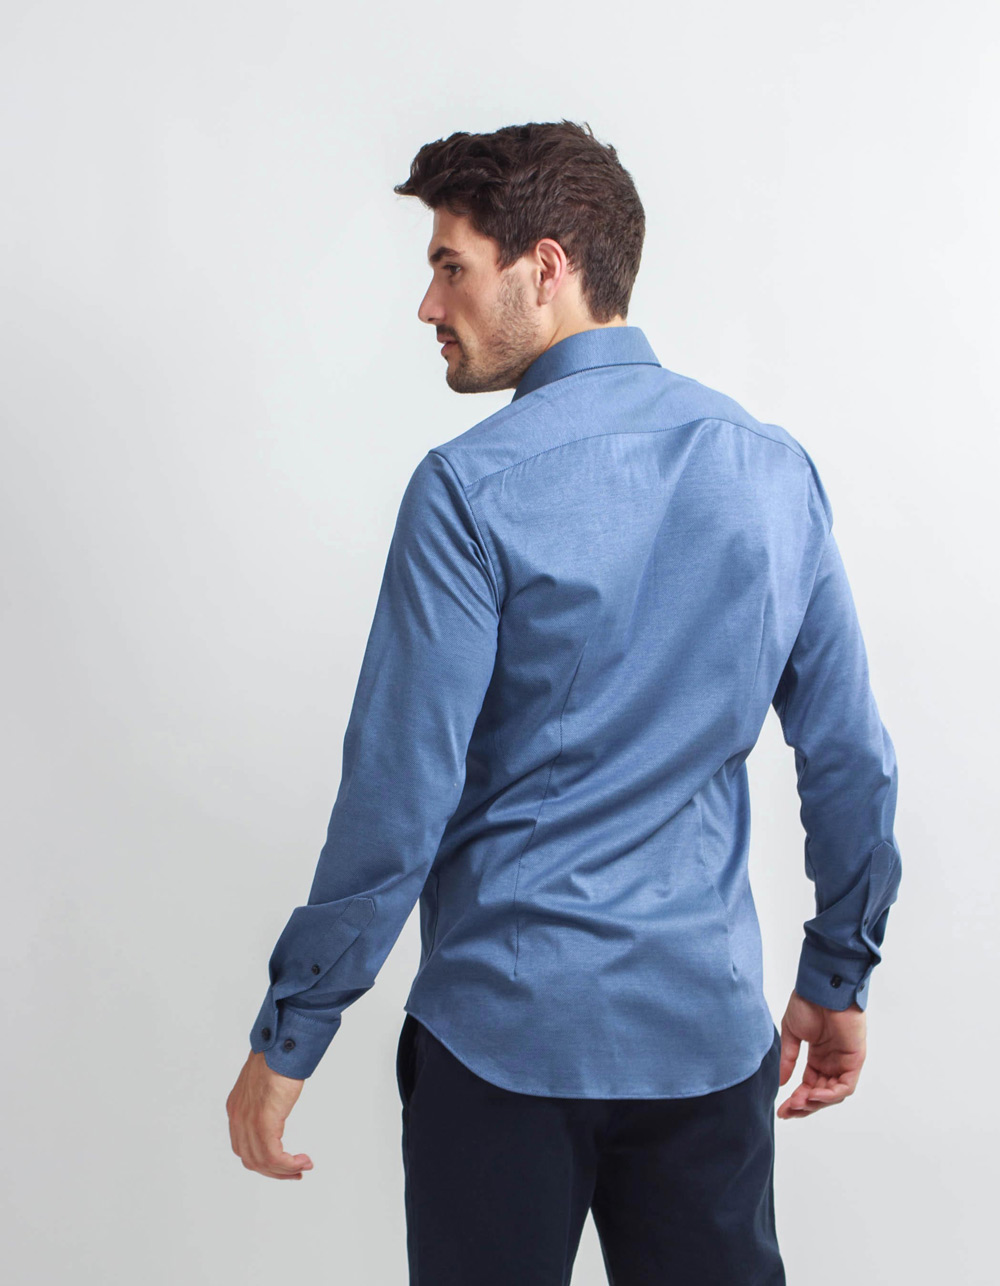 Blue Knit shirt  - Backside